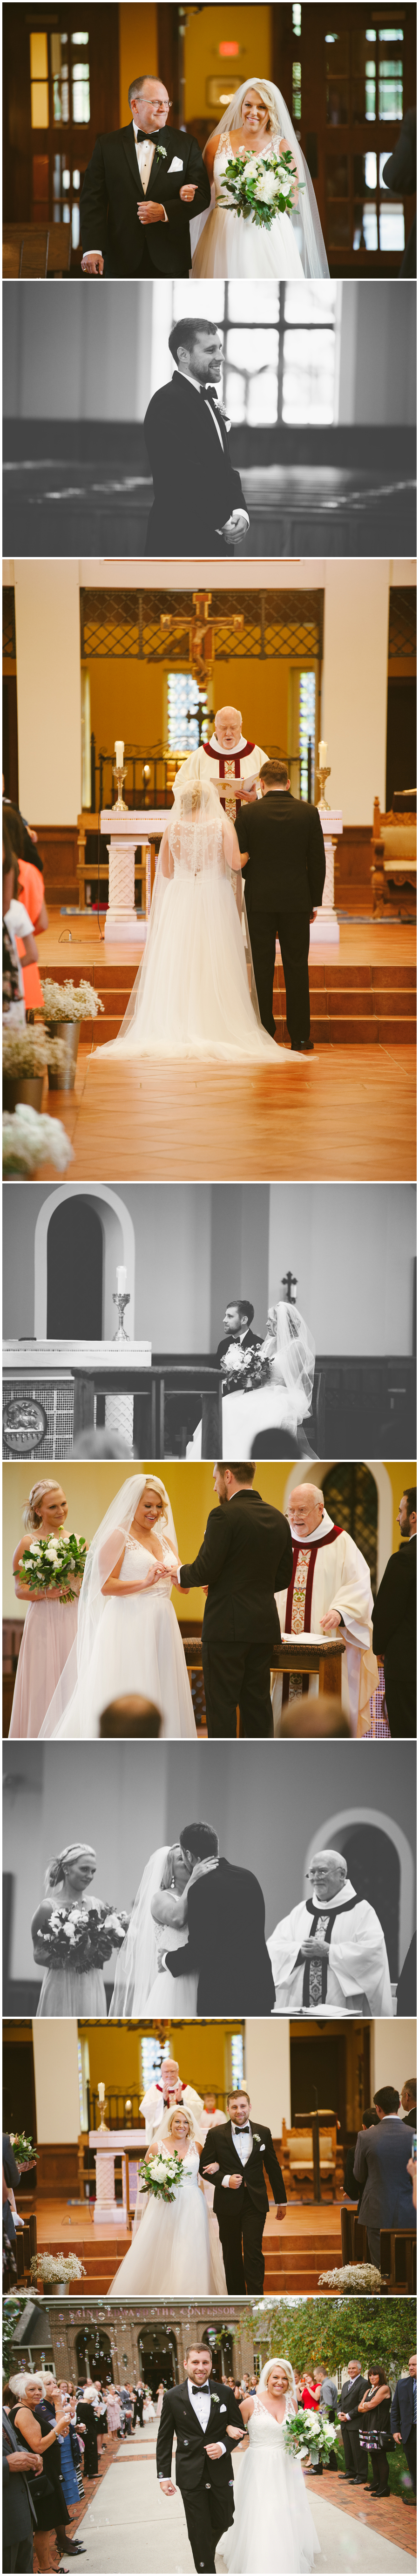 Blog Collage-Kelly+ChrisW-3